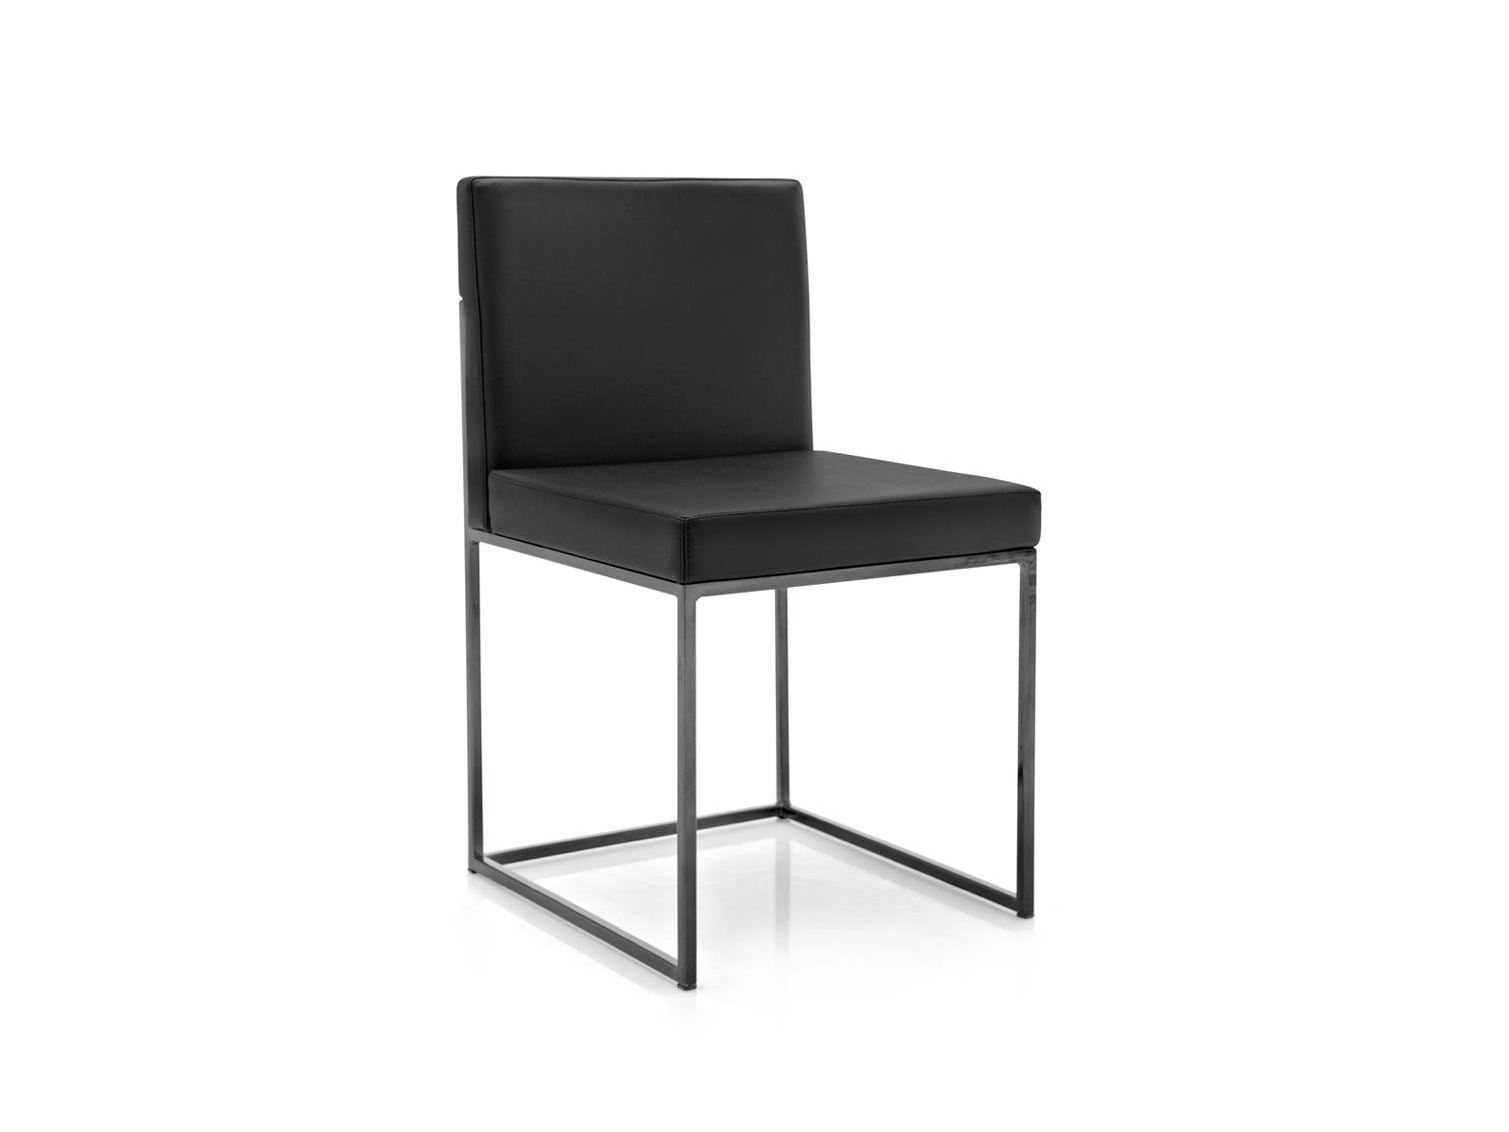 https://img.edilportale.com/products/EVEN-PLUS-Leather-chair-Calligaris-143597-rel52dabfee.jpg